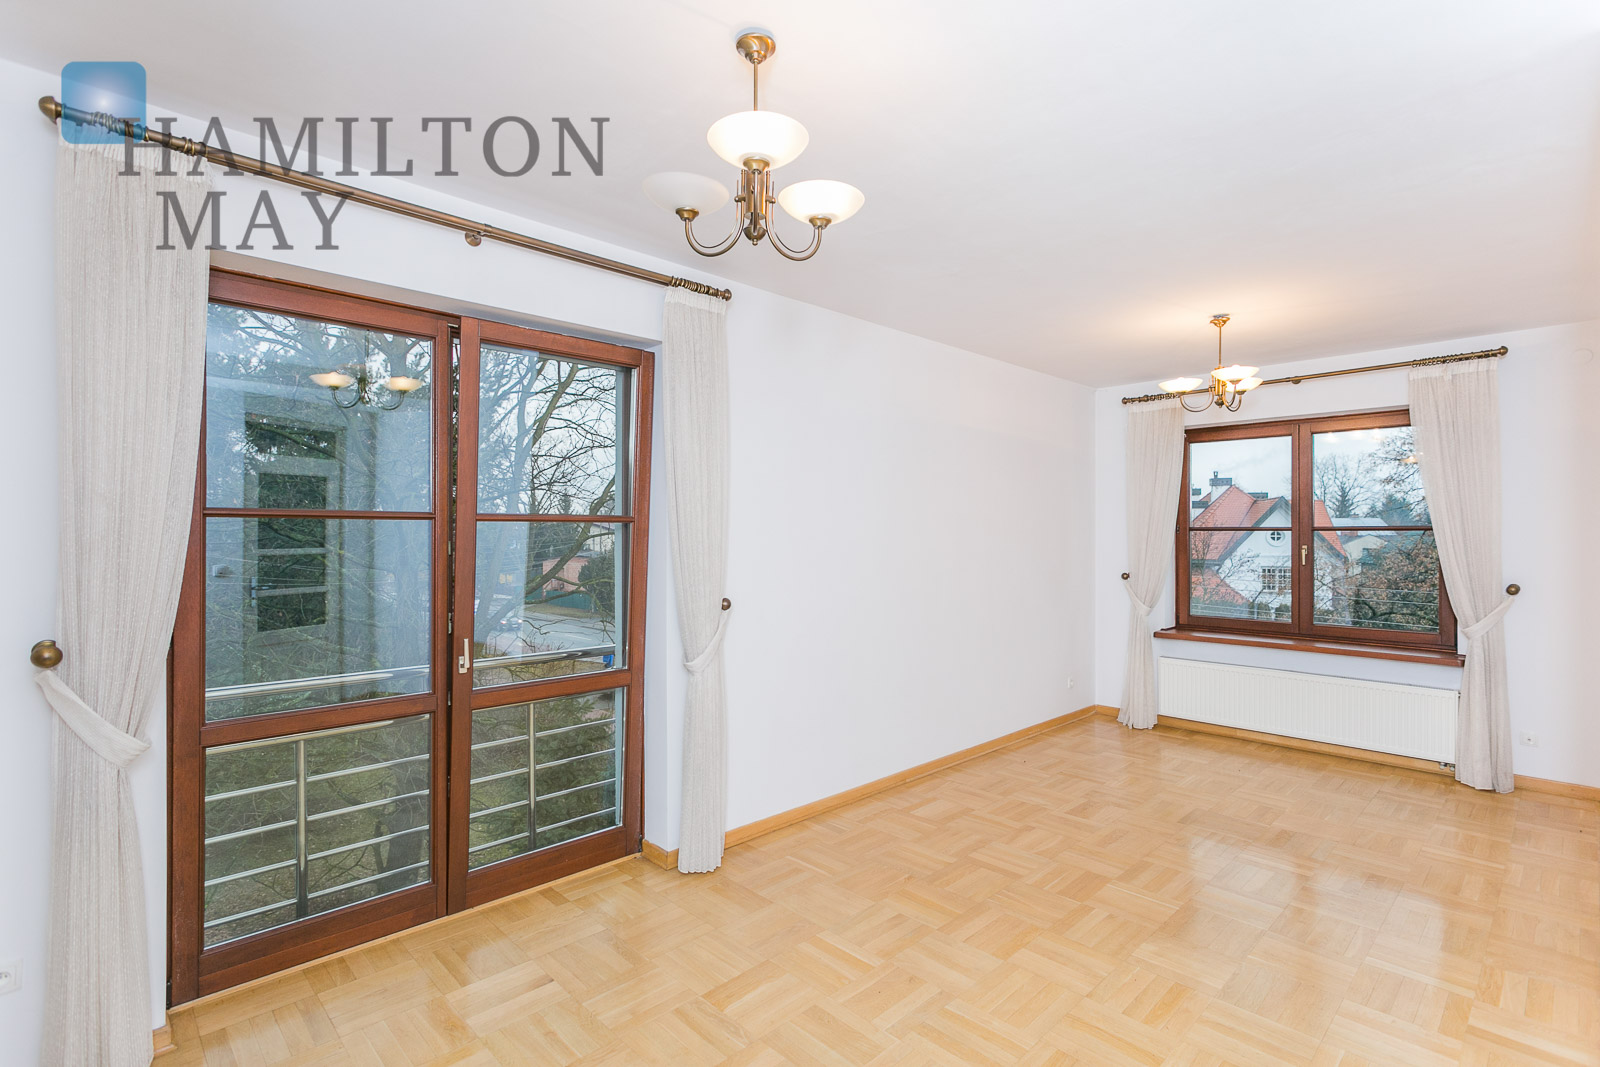 A villa in Konstancin, in the vicinity of the American School Warsaw for rent